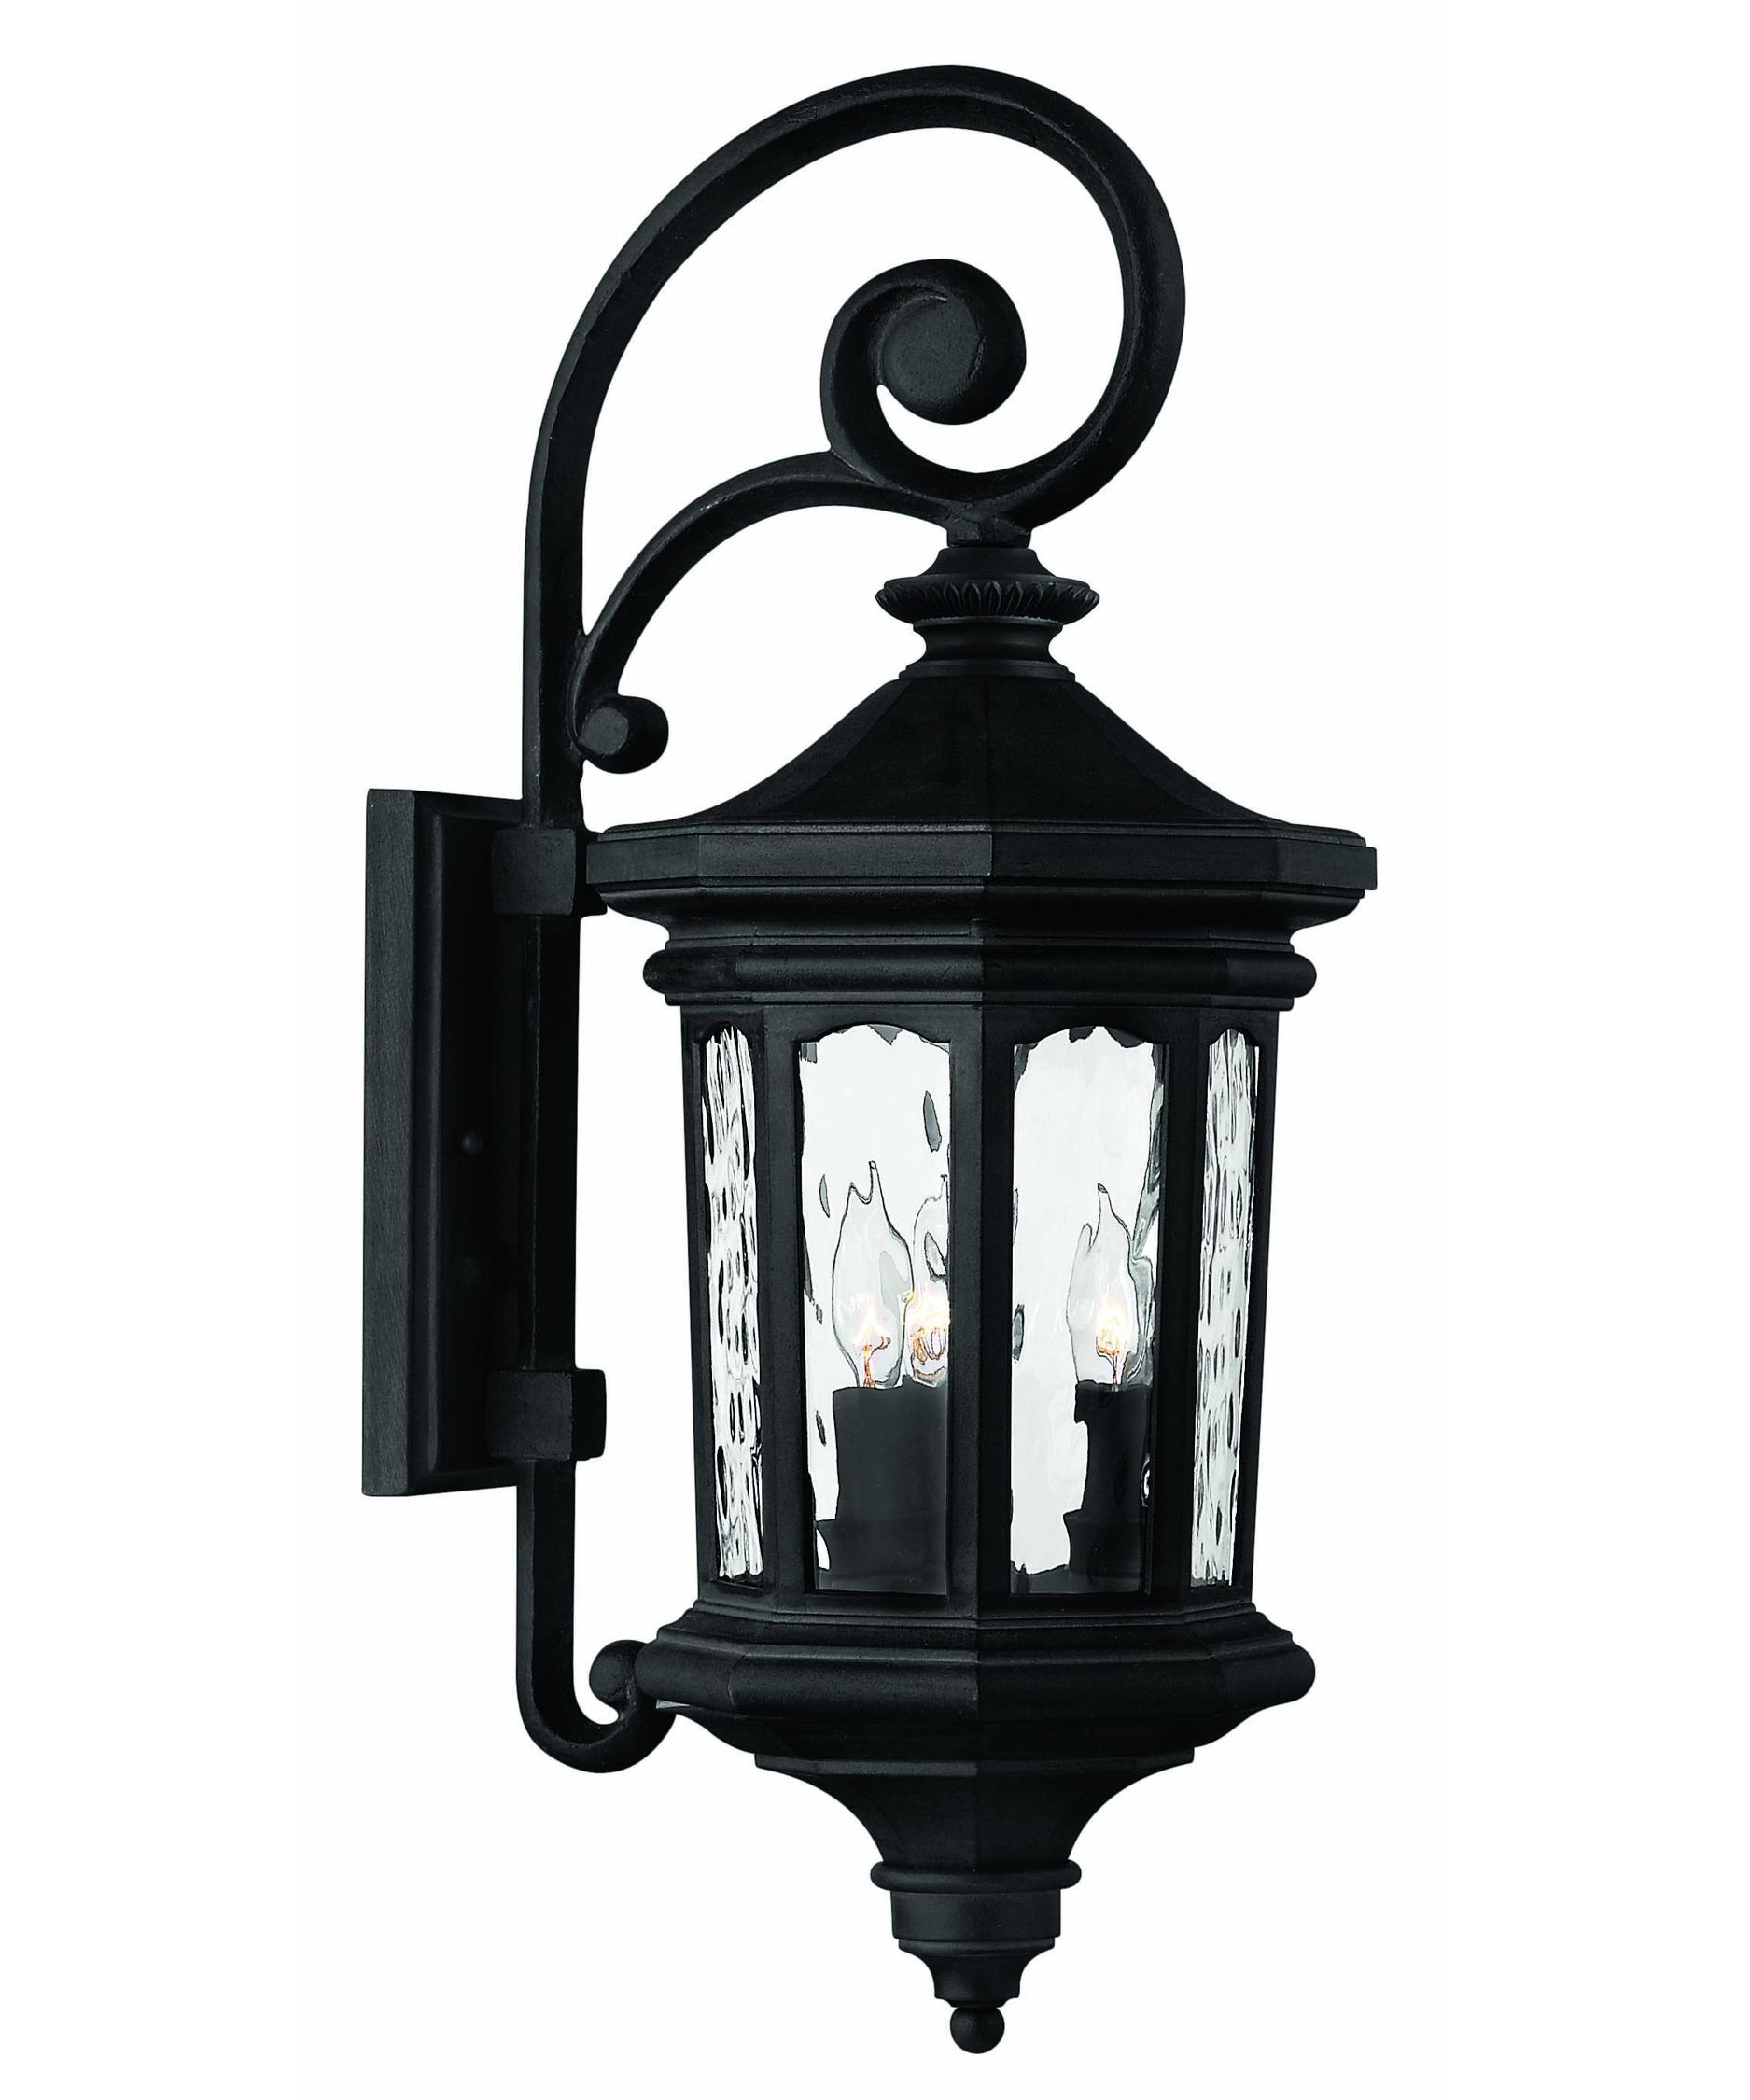 Hinkley Lighting 1604 Raley 10 Inch Wide 3 Light Outdoor Wall Light Intended For Favorite Traditional Outdoor Wall Lighting (View 3 of 20)